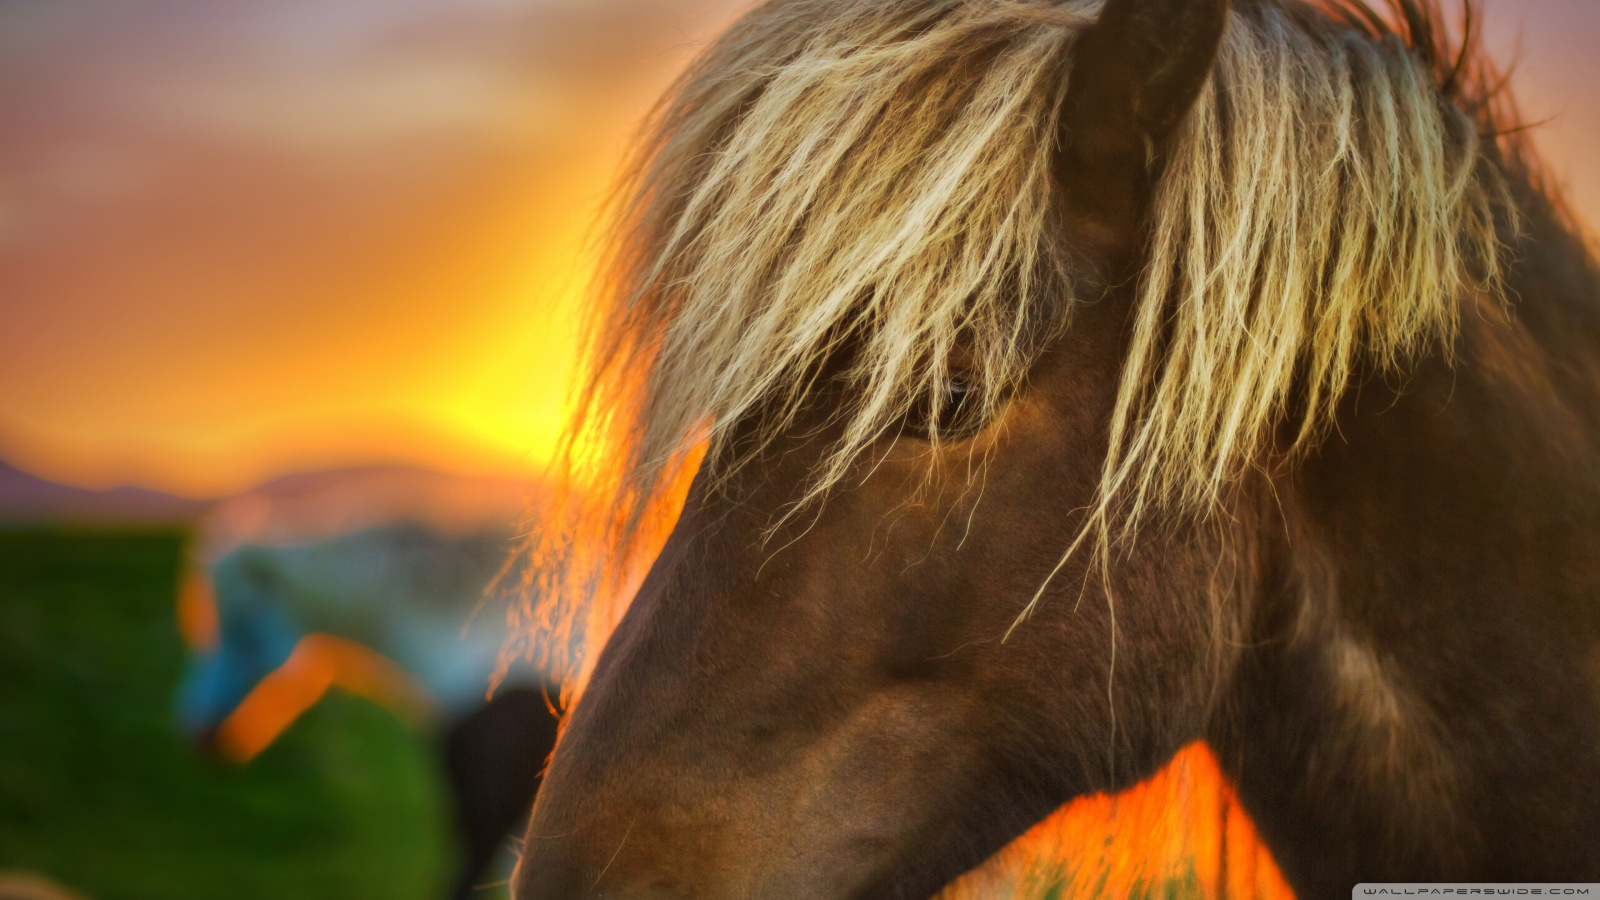 Top   Wallpaper Horse Sunrise - flaxen_horse_at_sunrise-wallpaper-1600x900  Perfect Image Reference_295434.jpg